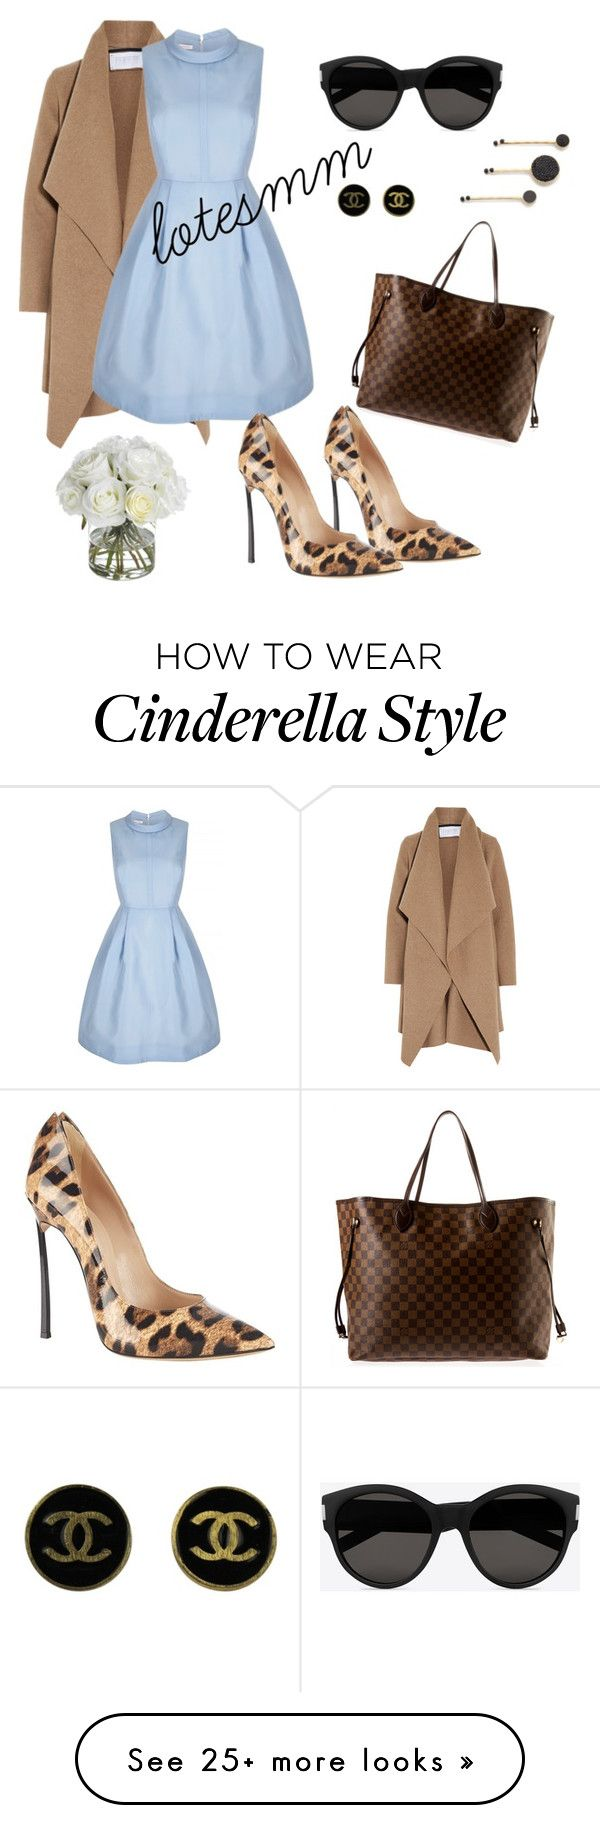 """blue dress coat"" by lotesmm on Polyvore featuring Casadei, Harris Wharf London, Chanel, Marc by Marc Jacobs, Yves Saint Laurent, Louis Vuitton, Diane James, women's clothing, women's fashion and women"